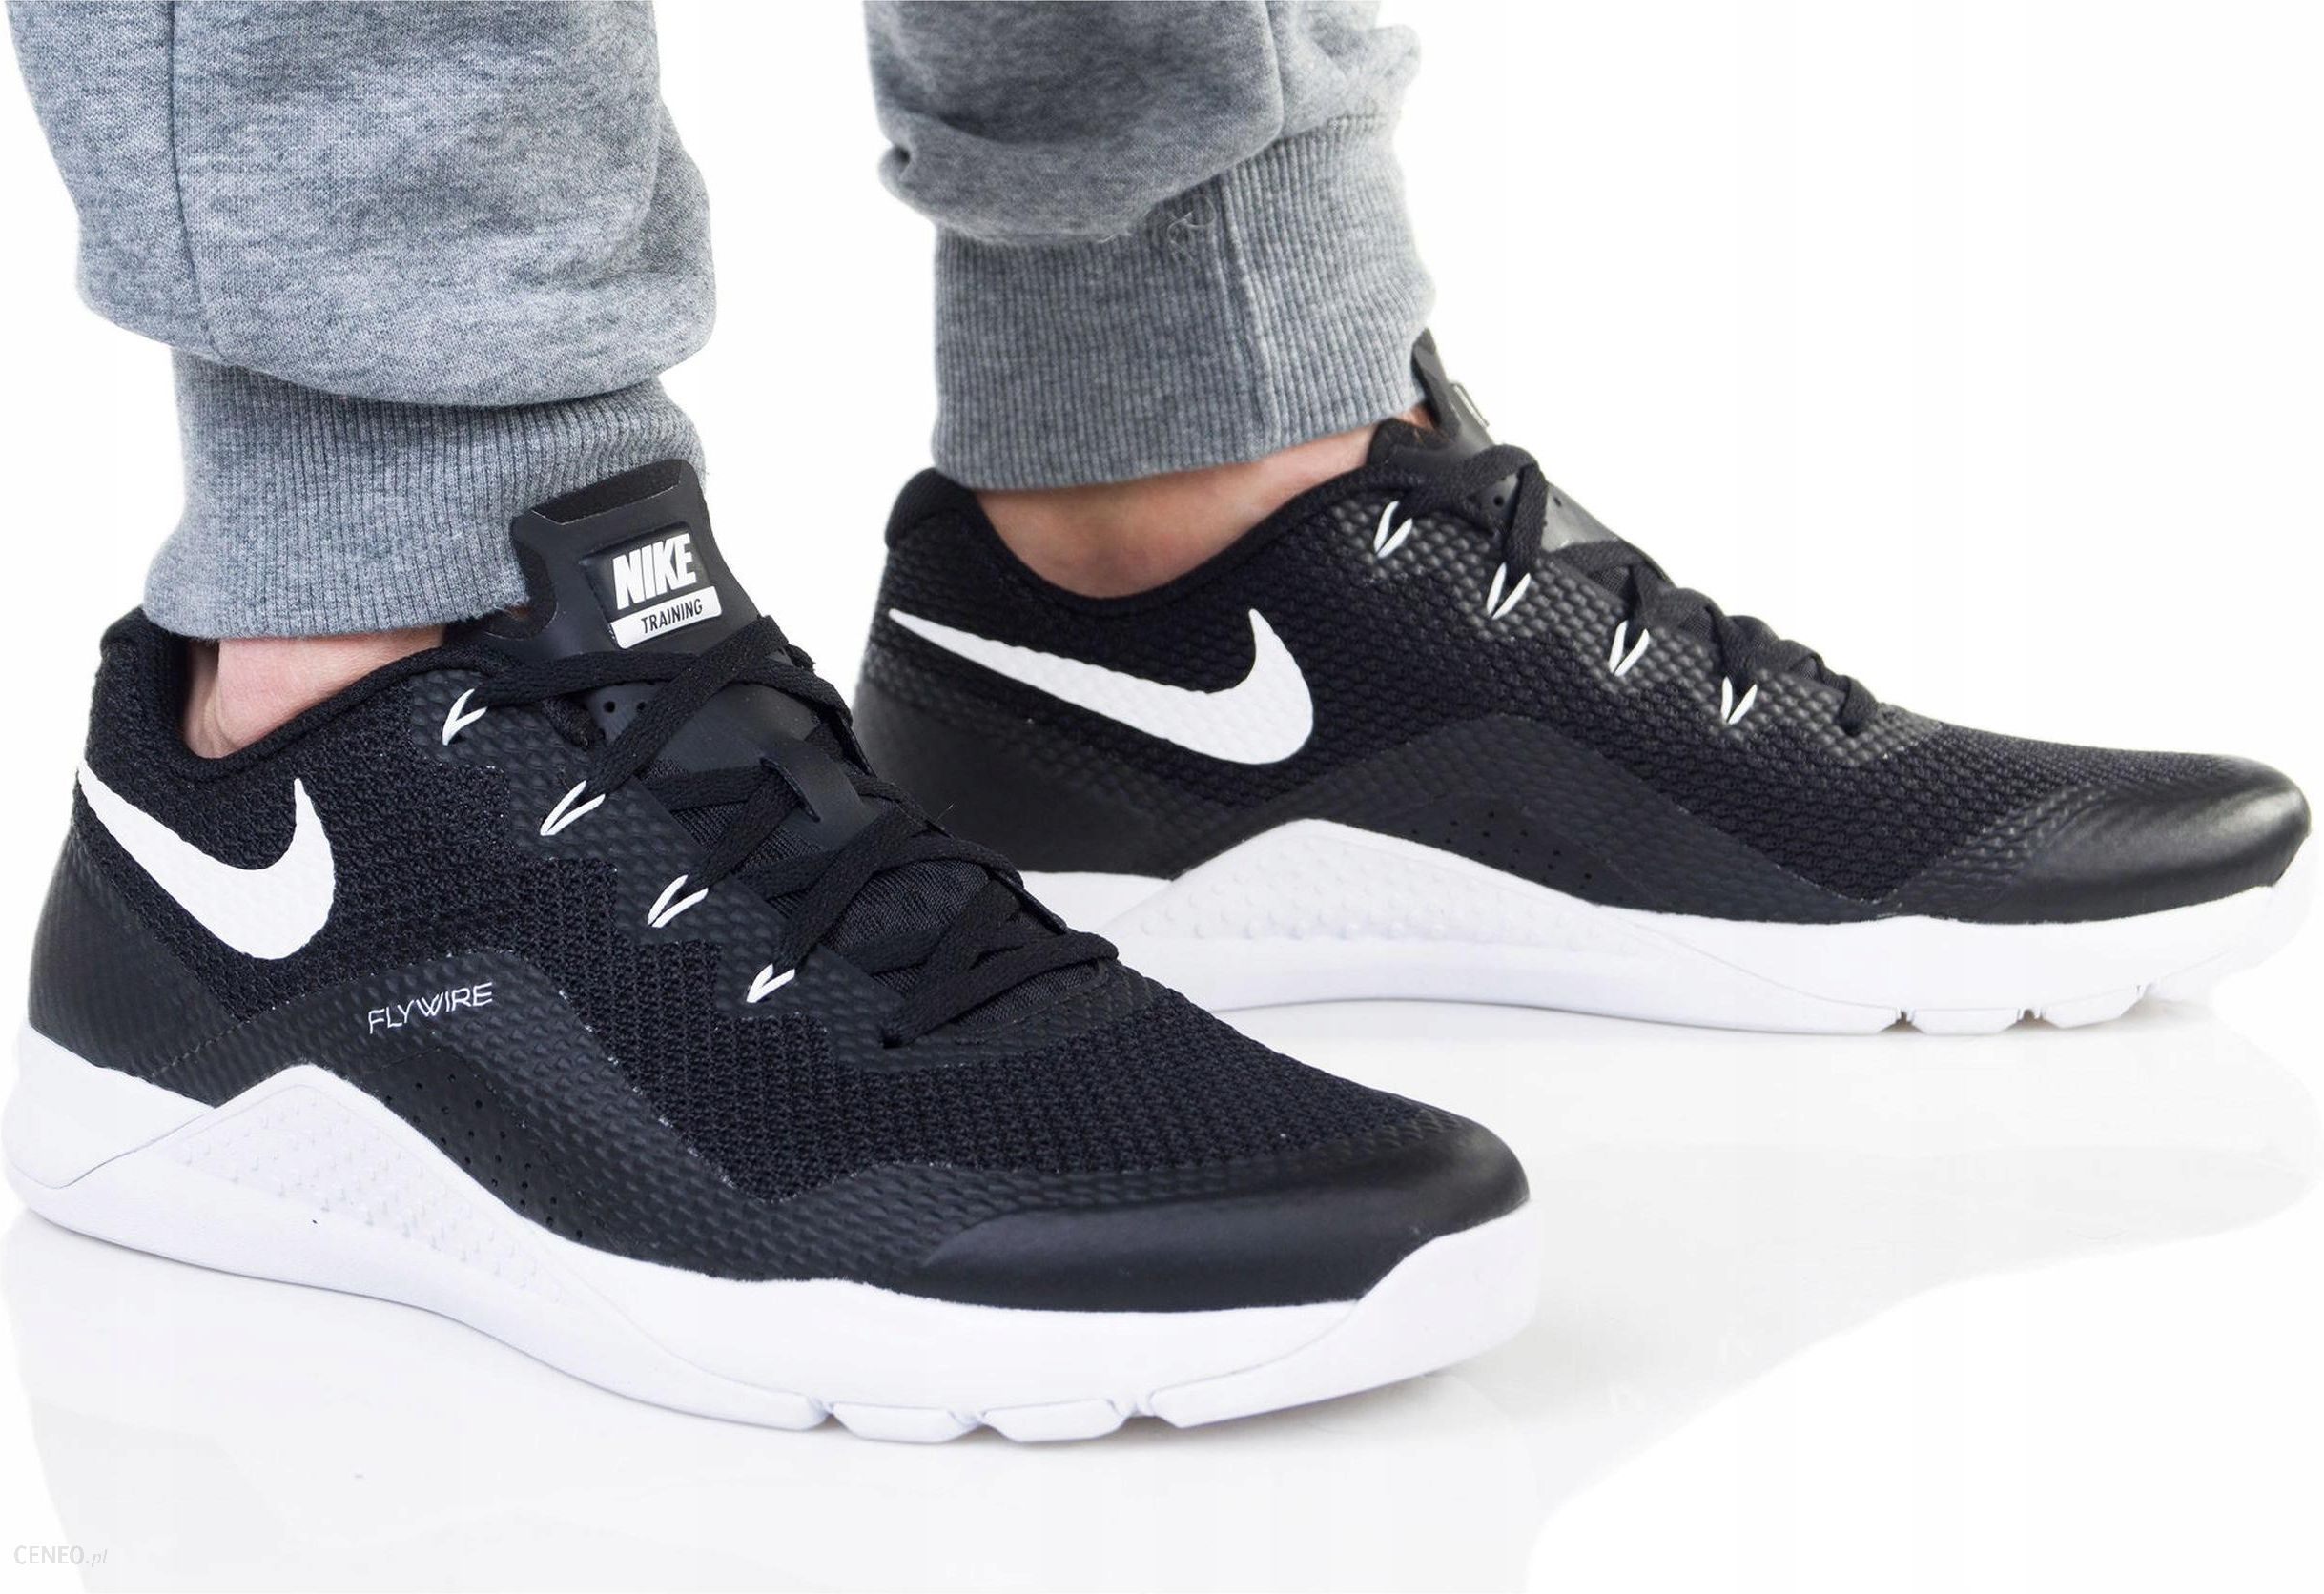 1442d4ad88b BUTY NIKE METCON REPPER DSX 898048-002 R. 45.5 - Ceny i opinie ...